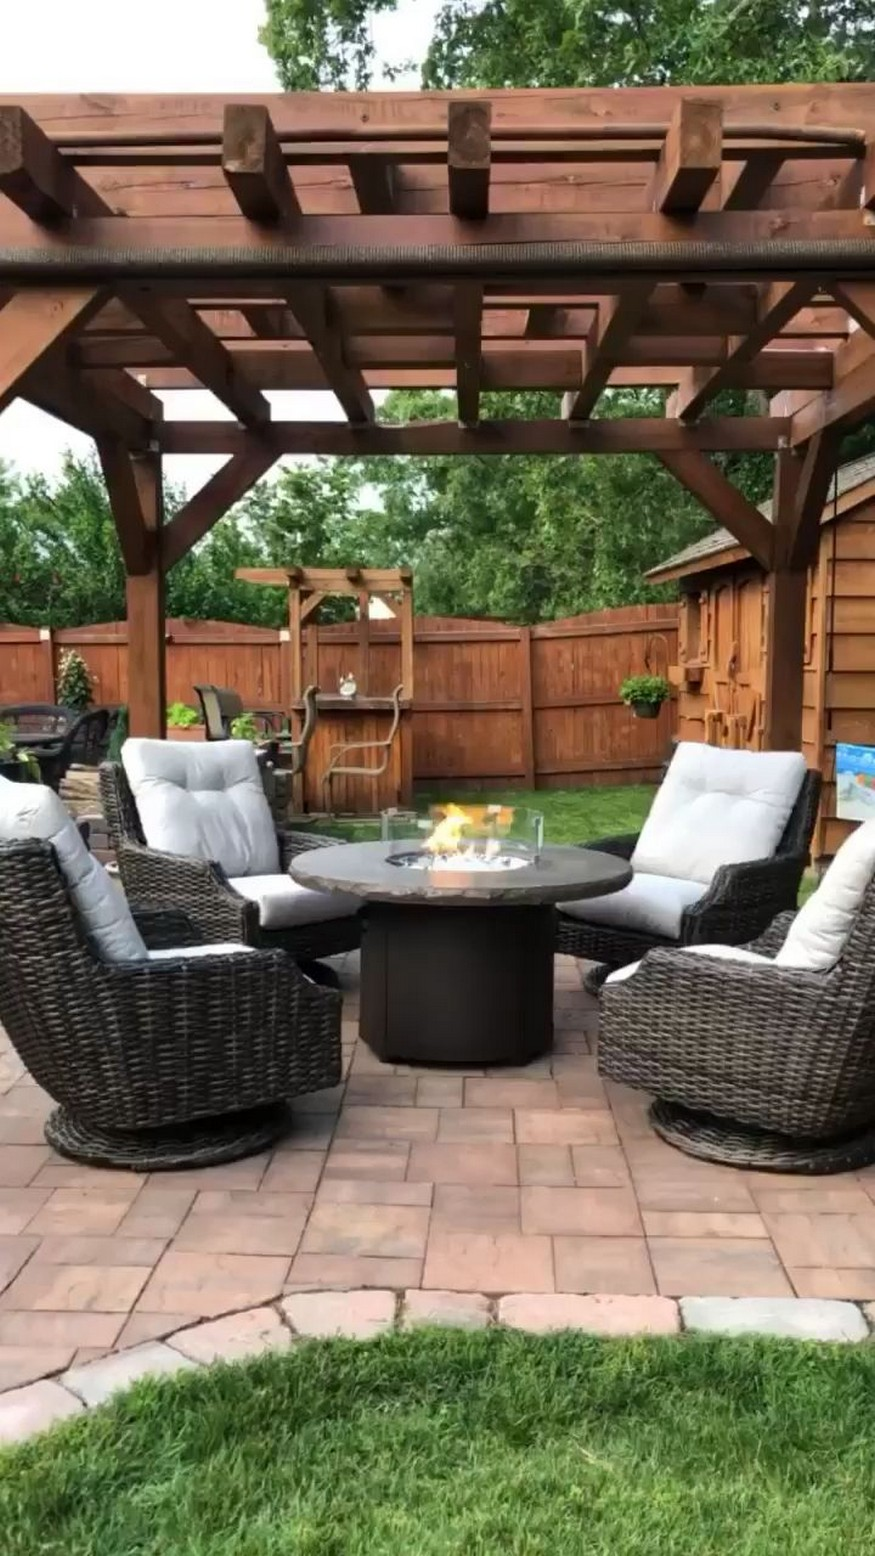 11 Garden Rooms For Every Style Home Decor 11